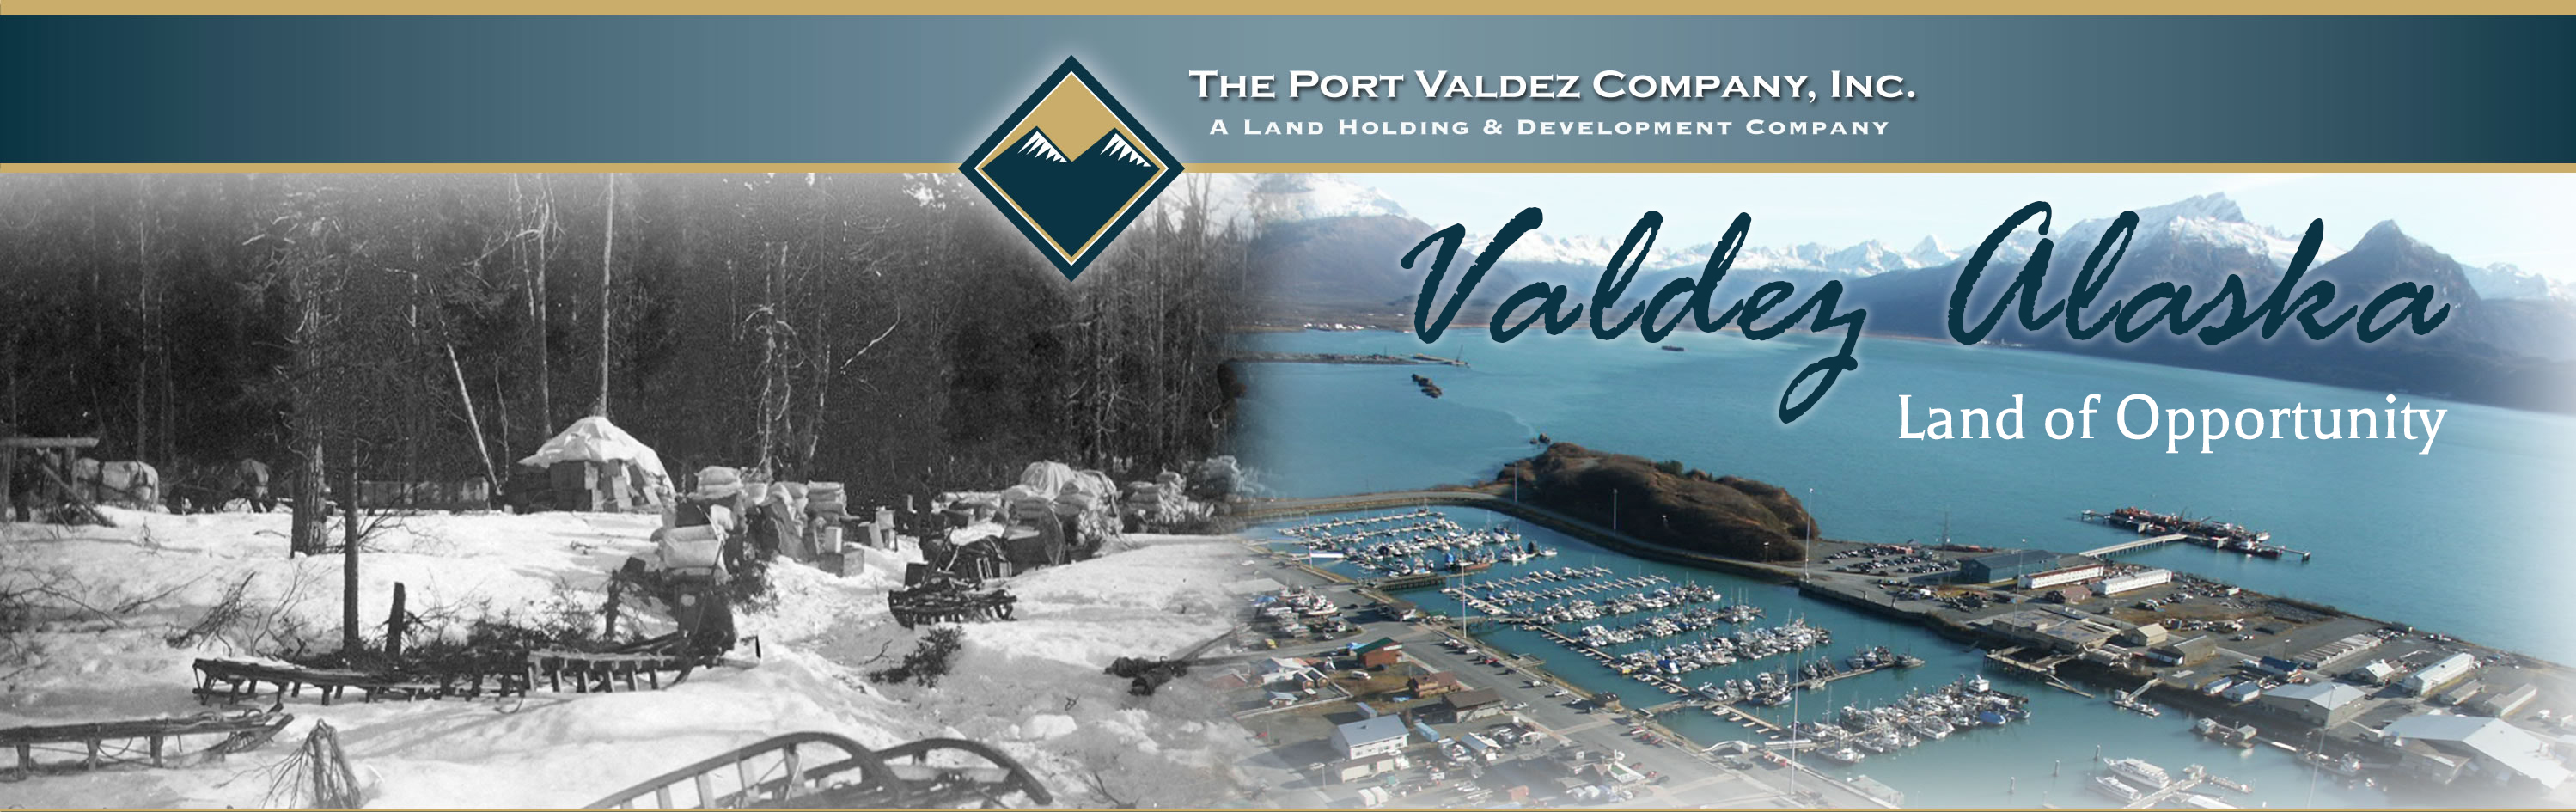 The Port Valdez Company, Inc. Logo